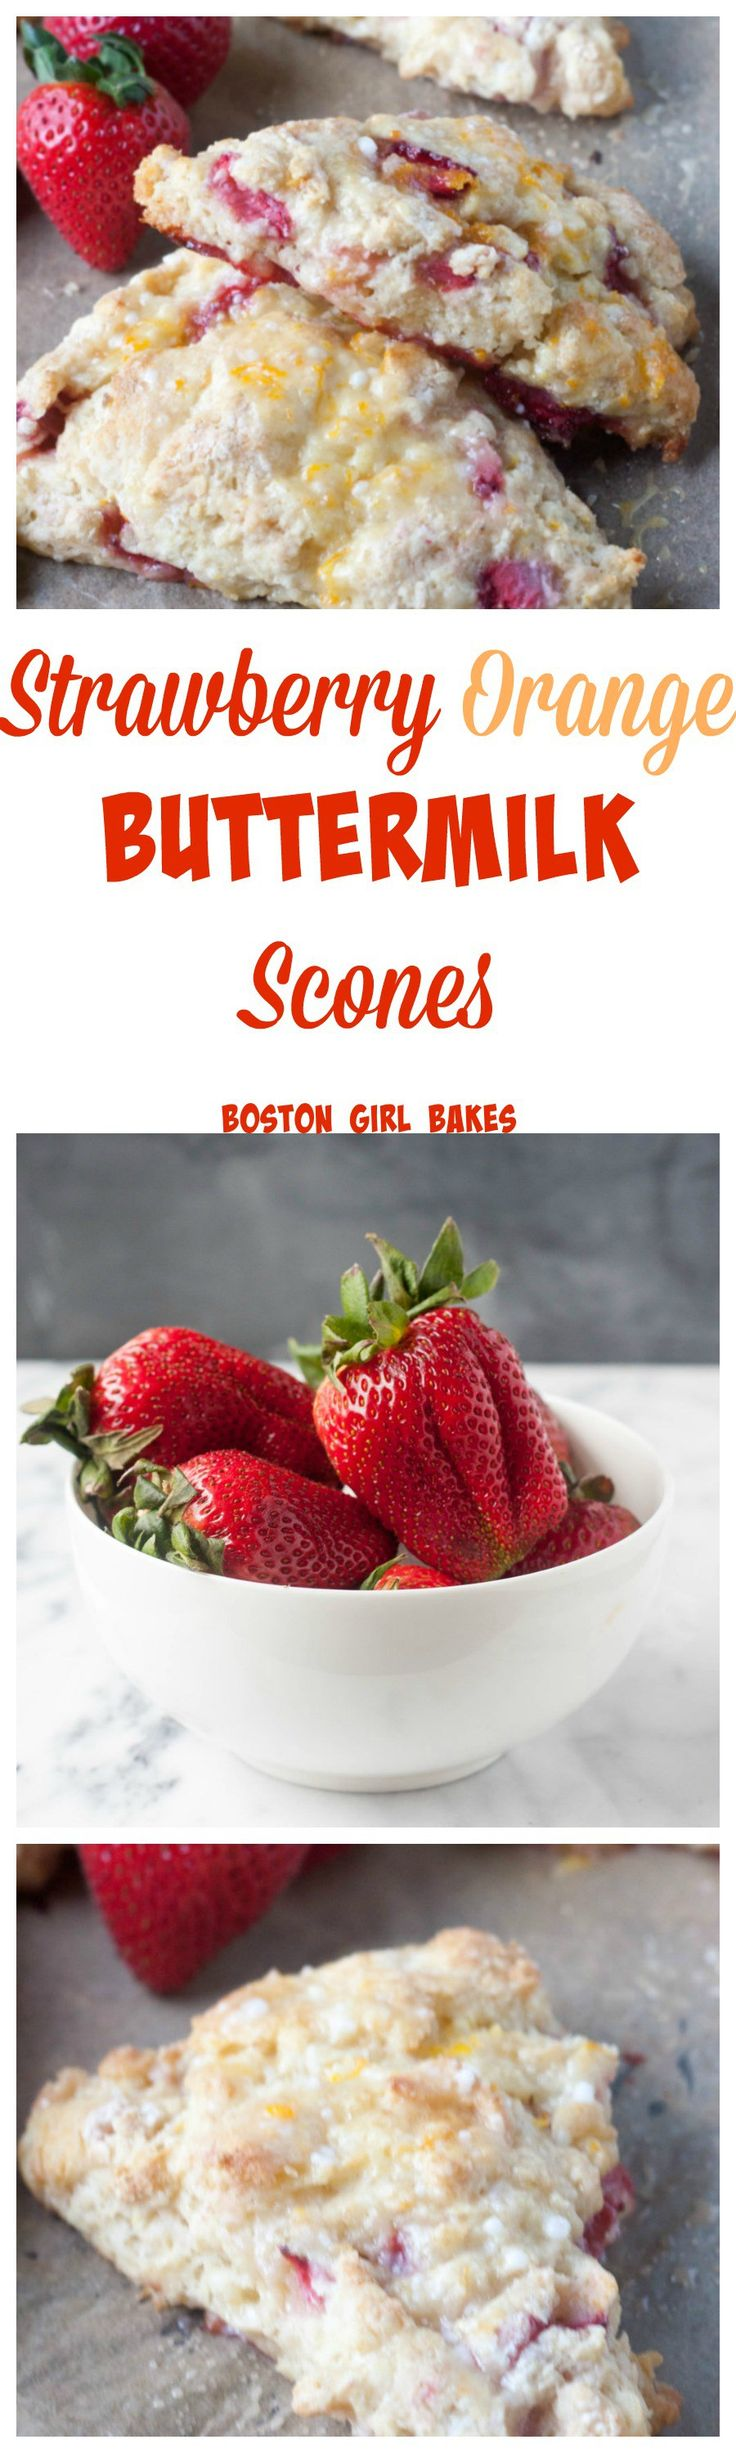 This Blog is a MUST for all aspiring bakers- Learn WHY a dessert works (the science) and how to perfect it every time- and make amazing scones!